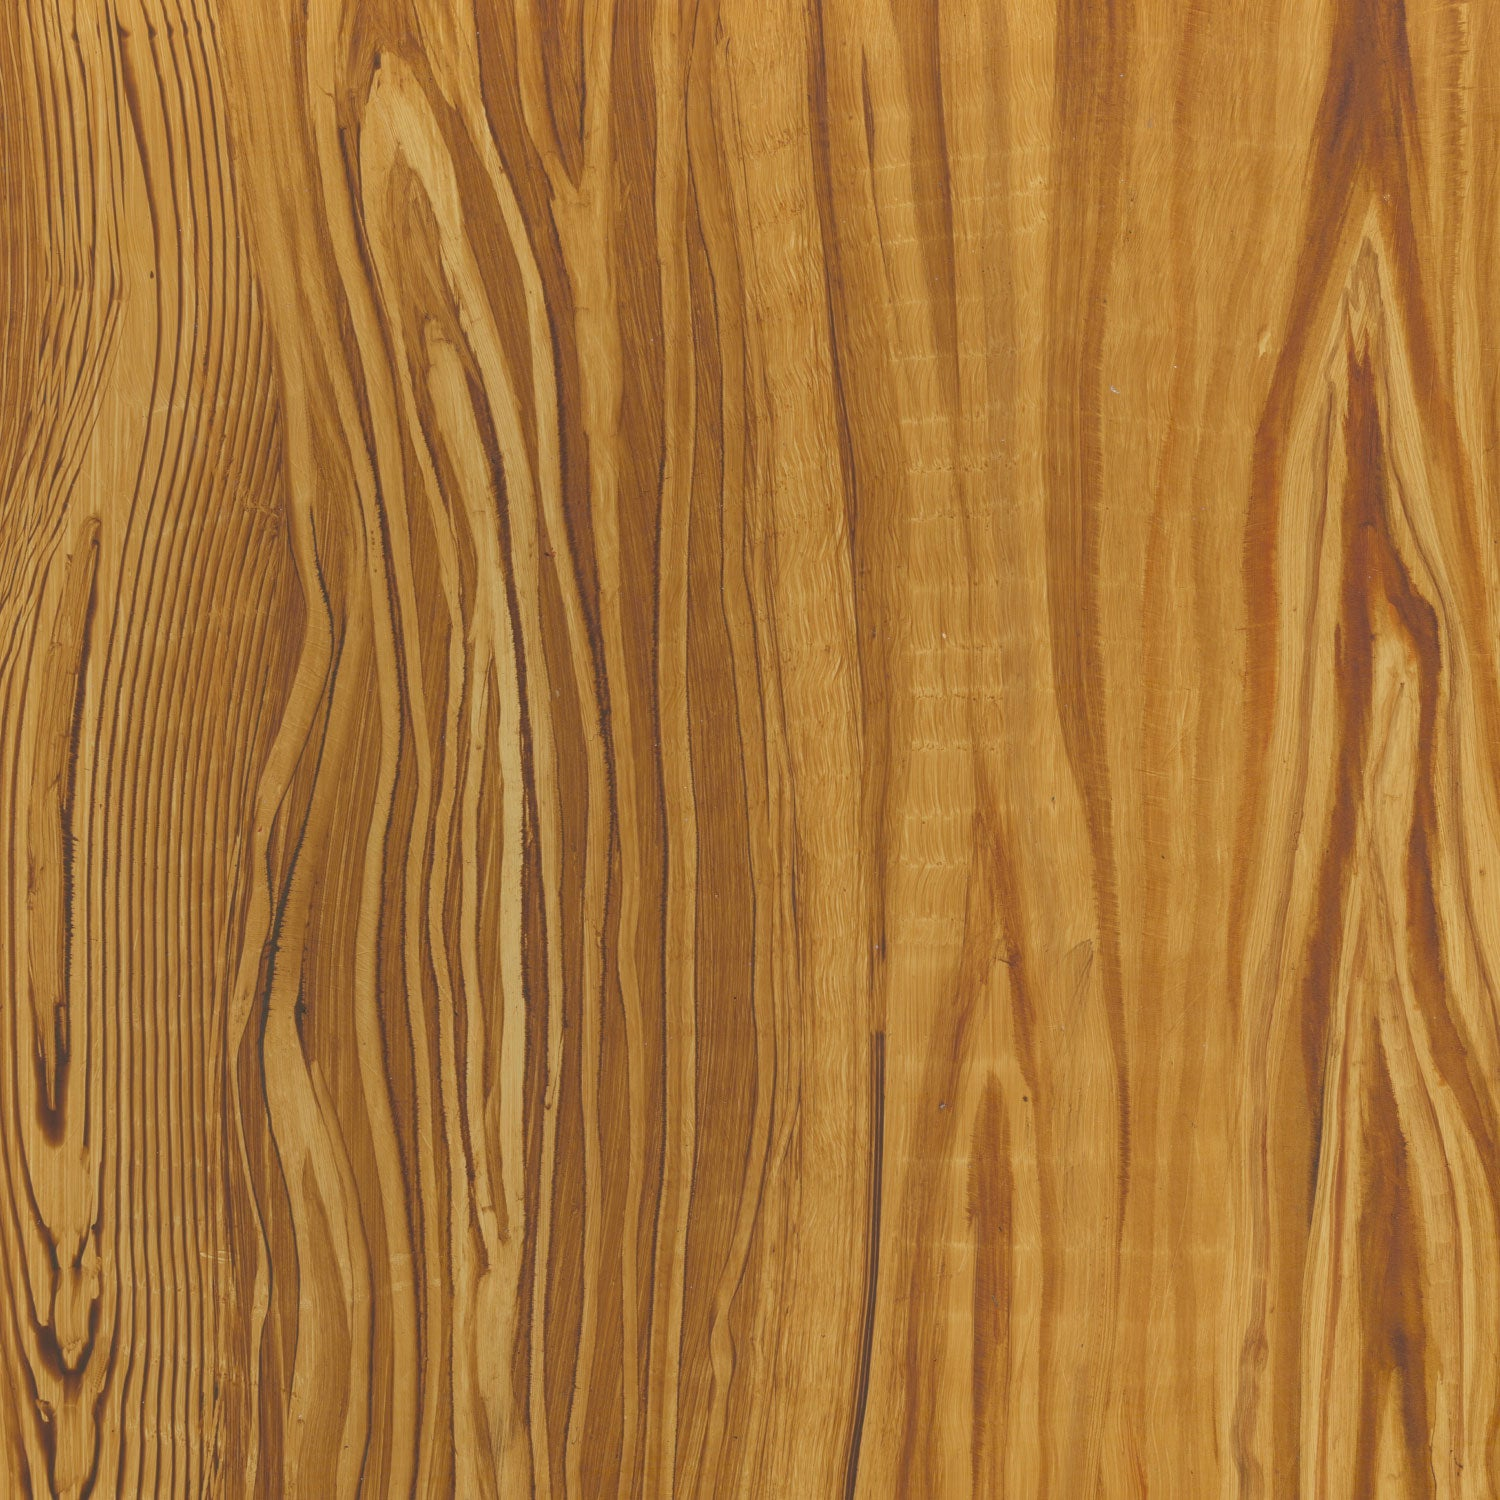 A5 Memo Block - Pitch Pine